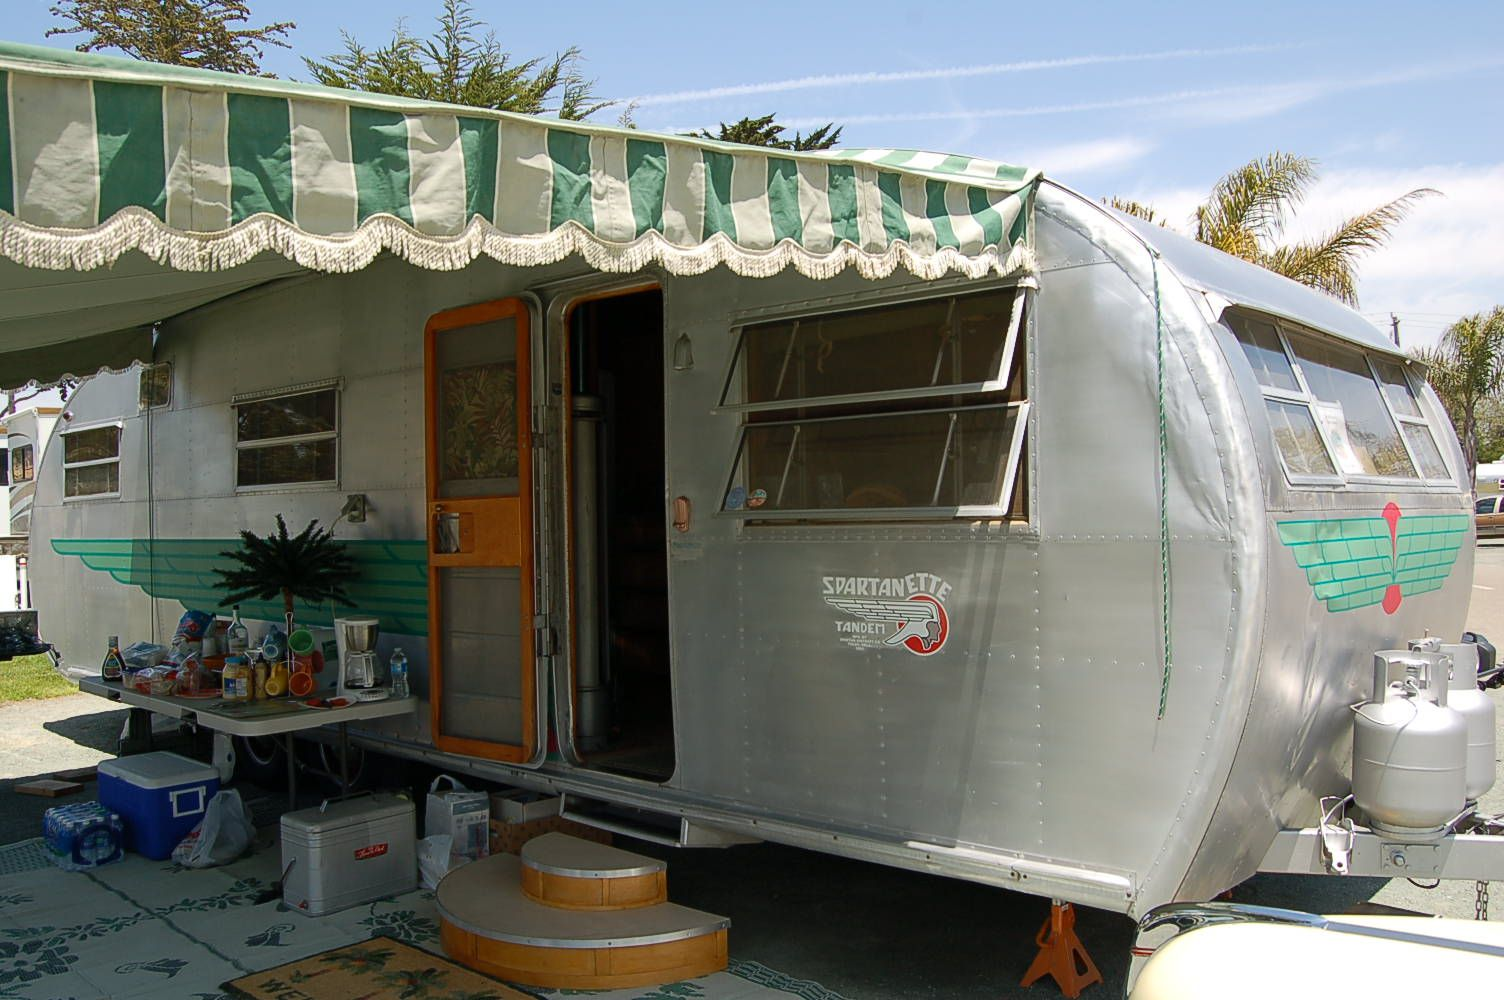 Vintage Trailer Awnings From Oldtrailer Com Camper Awning Lights Vintage Trailers Trailer Awning